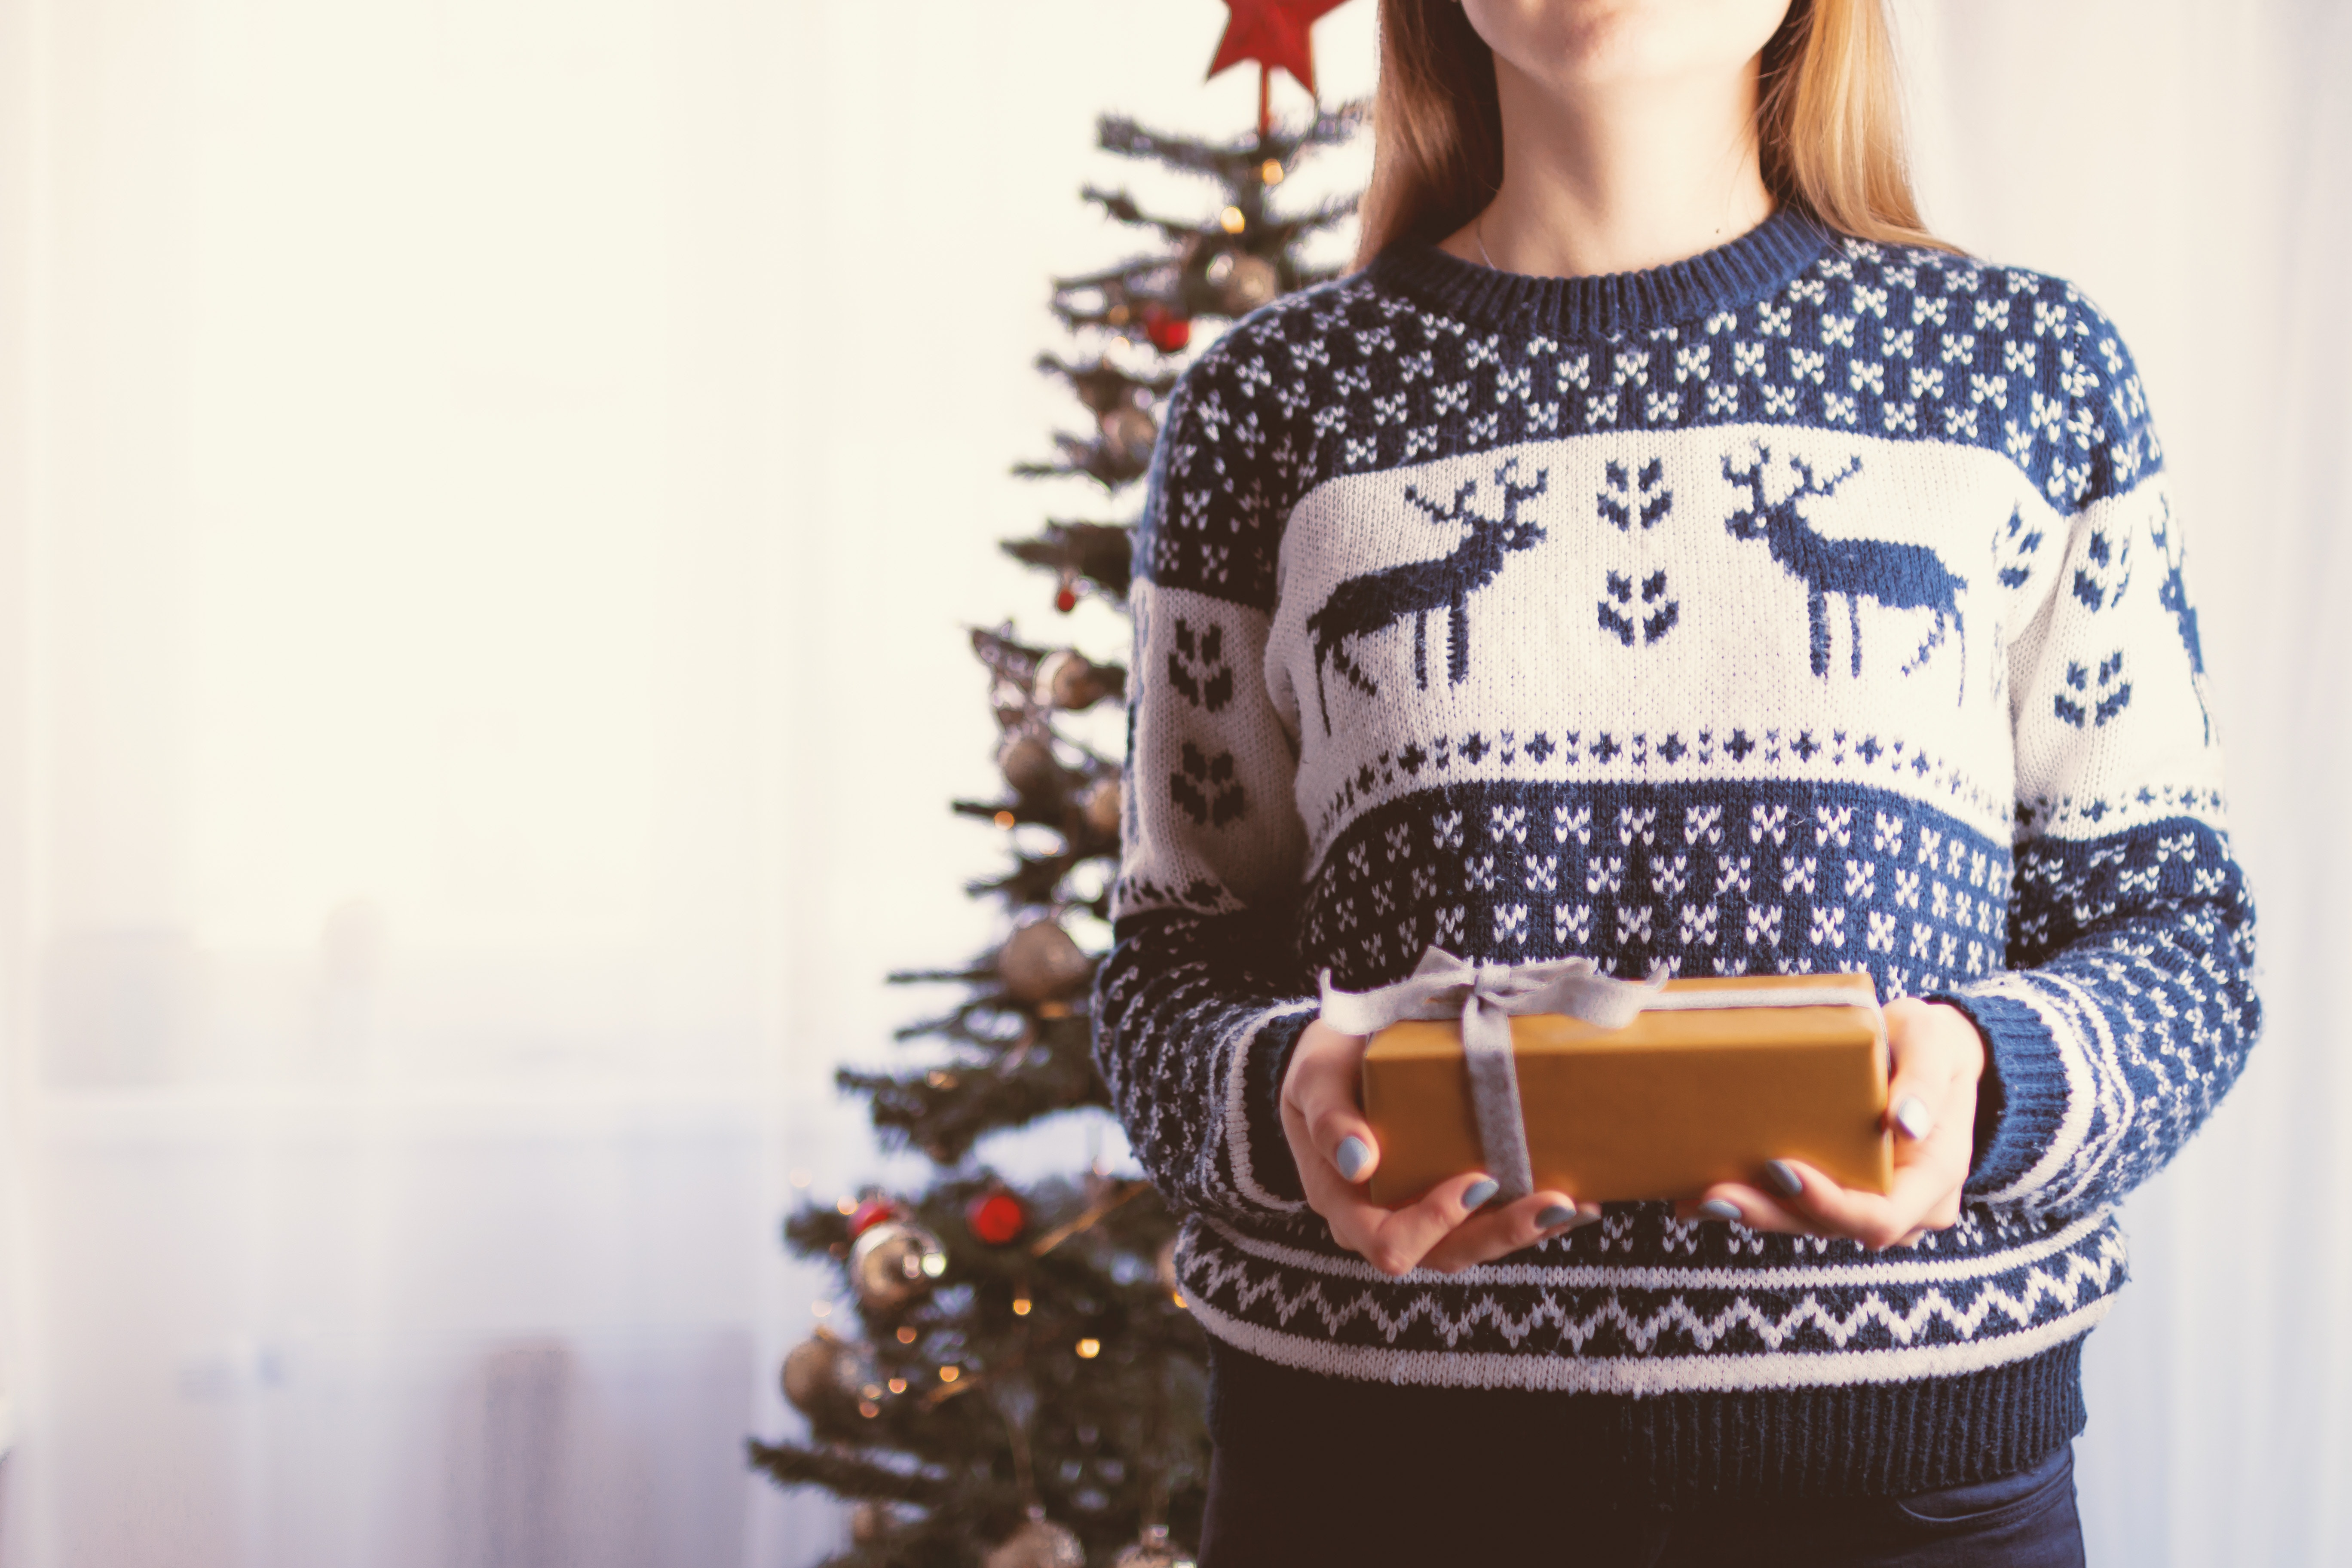 Christmas-themed Wallpaper, Person, Young, Woman, White, HQ Photo